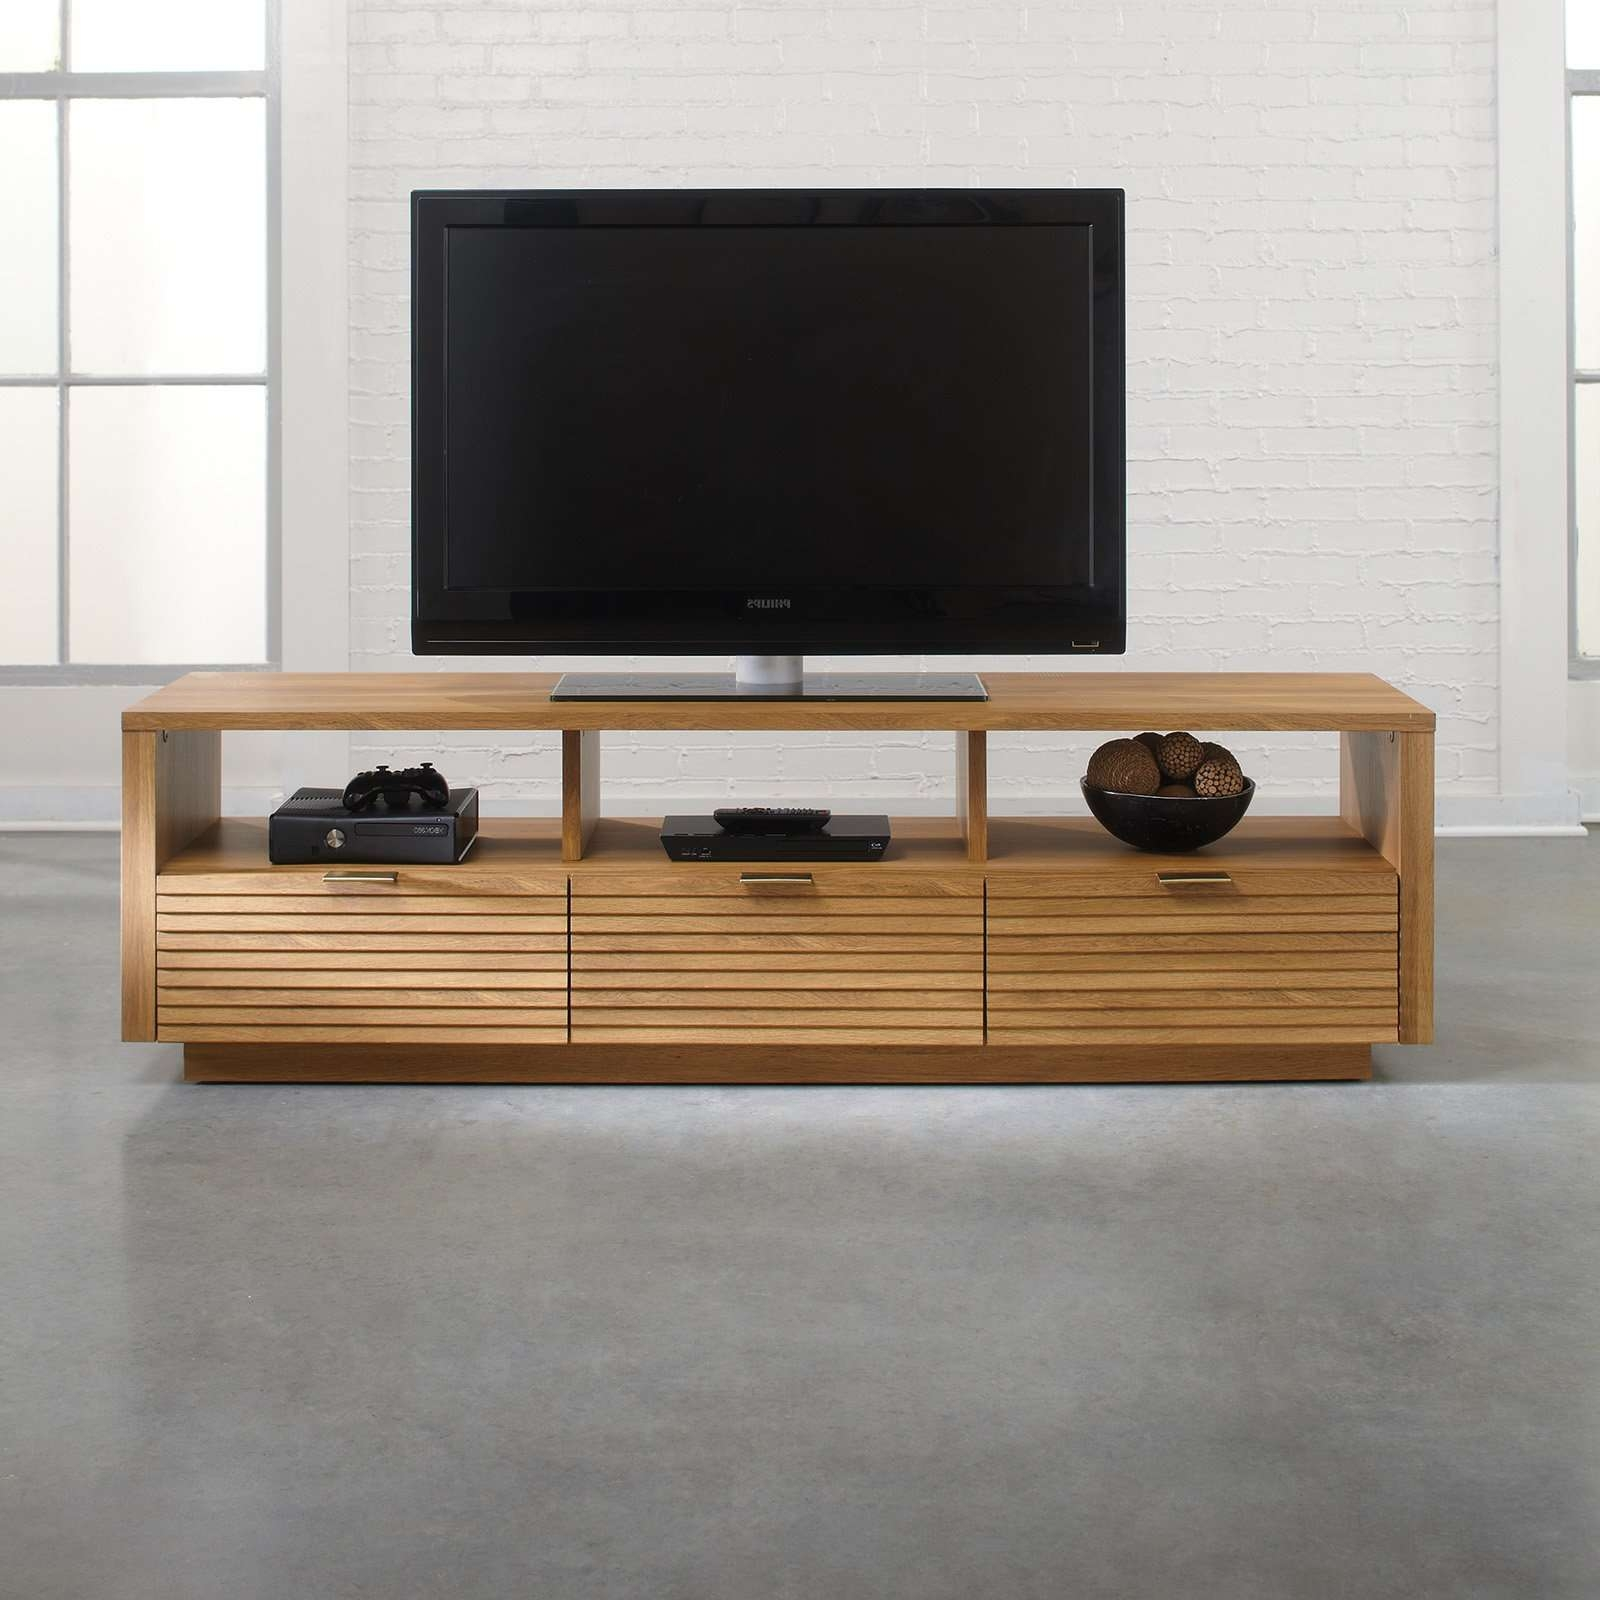 Belham Living Carter Mid Century Modern Tv Stand | Hayneedle With Regard To Modern Low Tv Stands (View 7 of 20)